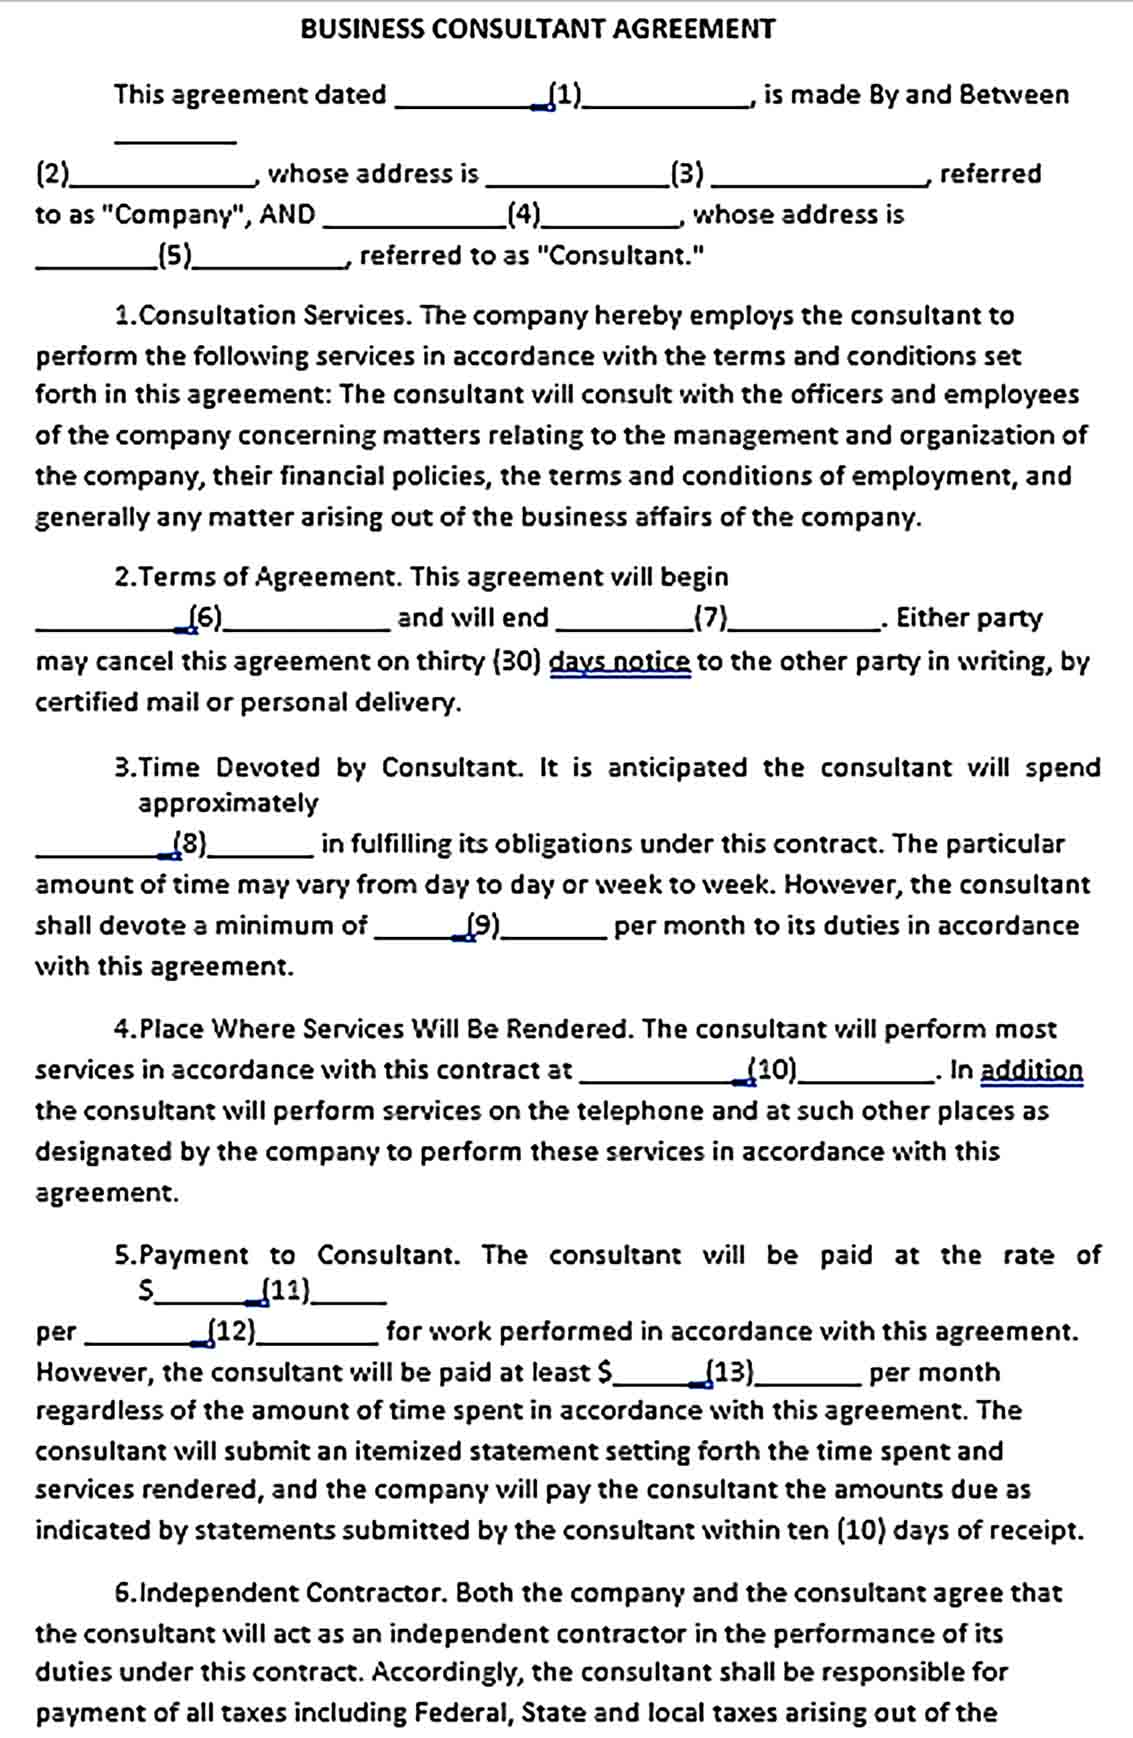 Sample Business Consultant Agreement